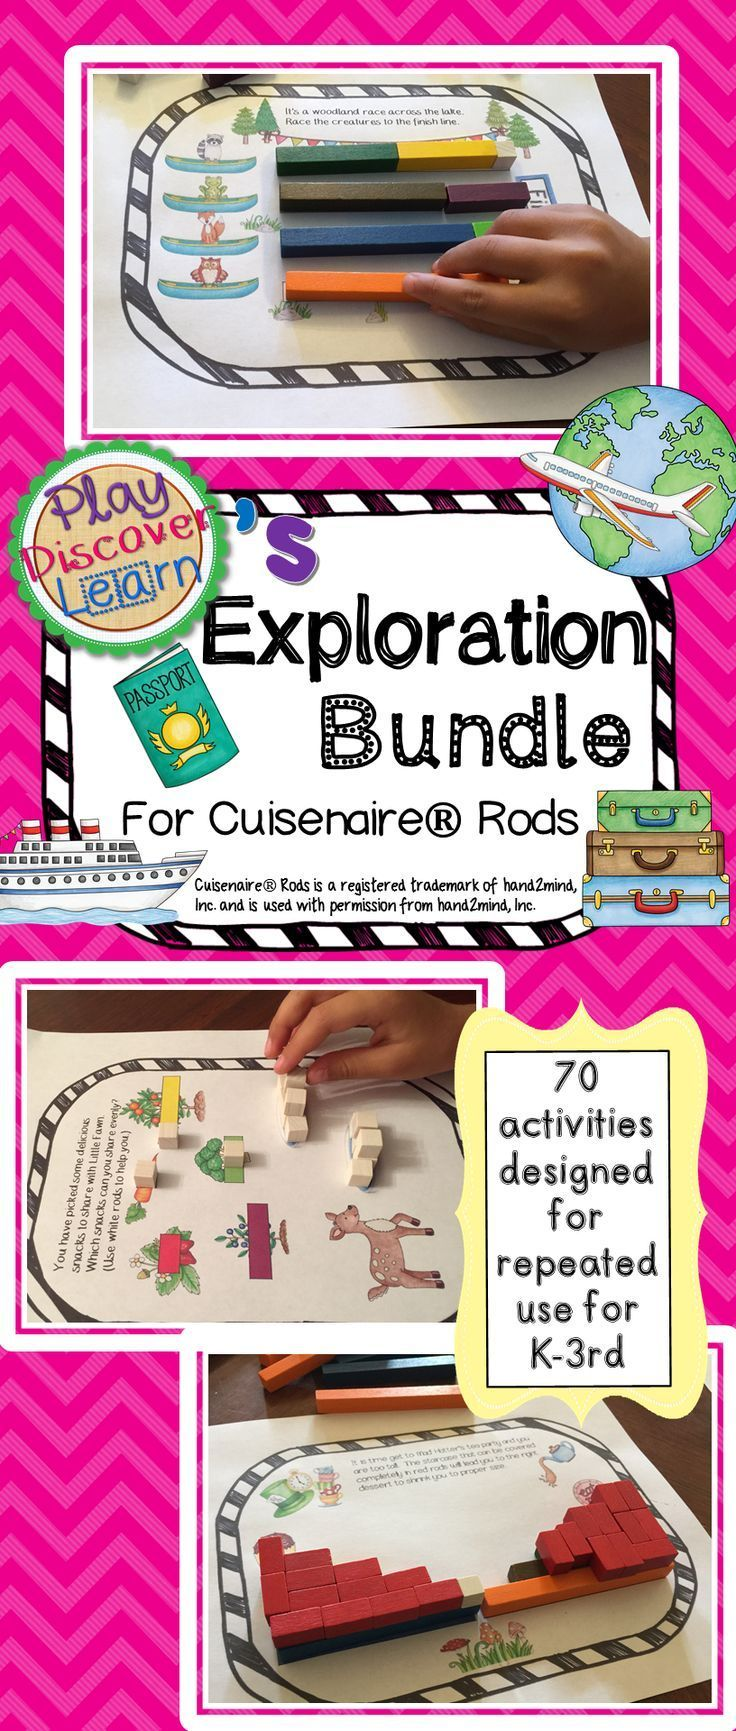 The bundle includes 70 hands-on activities and 220 student task cards that cover a wide range of elementary math concepts including number sense, odd and even numbers, addition, subtraction, multiplication, fractions, factoring, squares, algebra and more. Designed to appeal to the imagination of children to encourage repeated use of the activities to solidify the number sense with joyful discoveries. These activities are designed to be used with Cuisenaire® Rods.